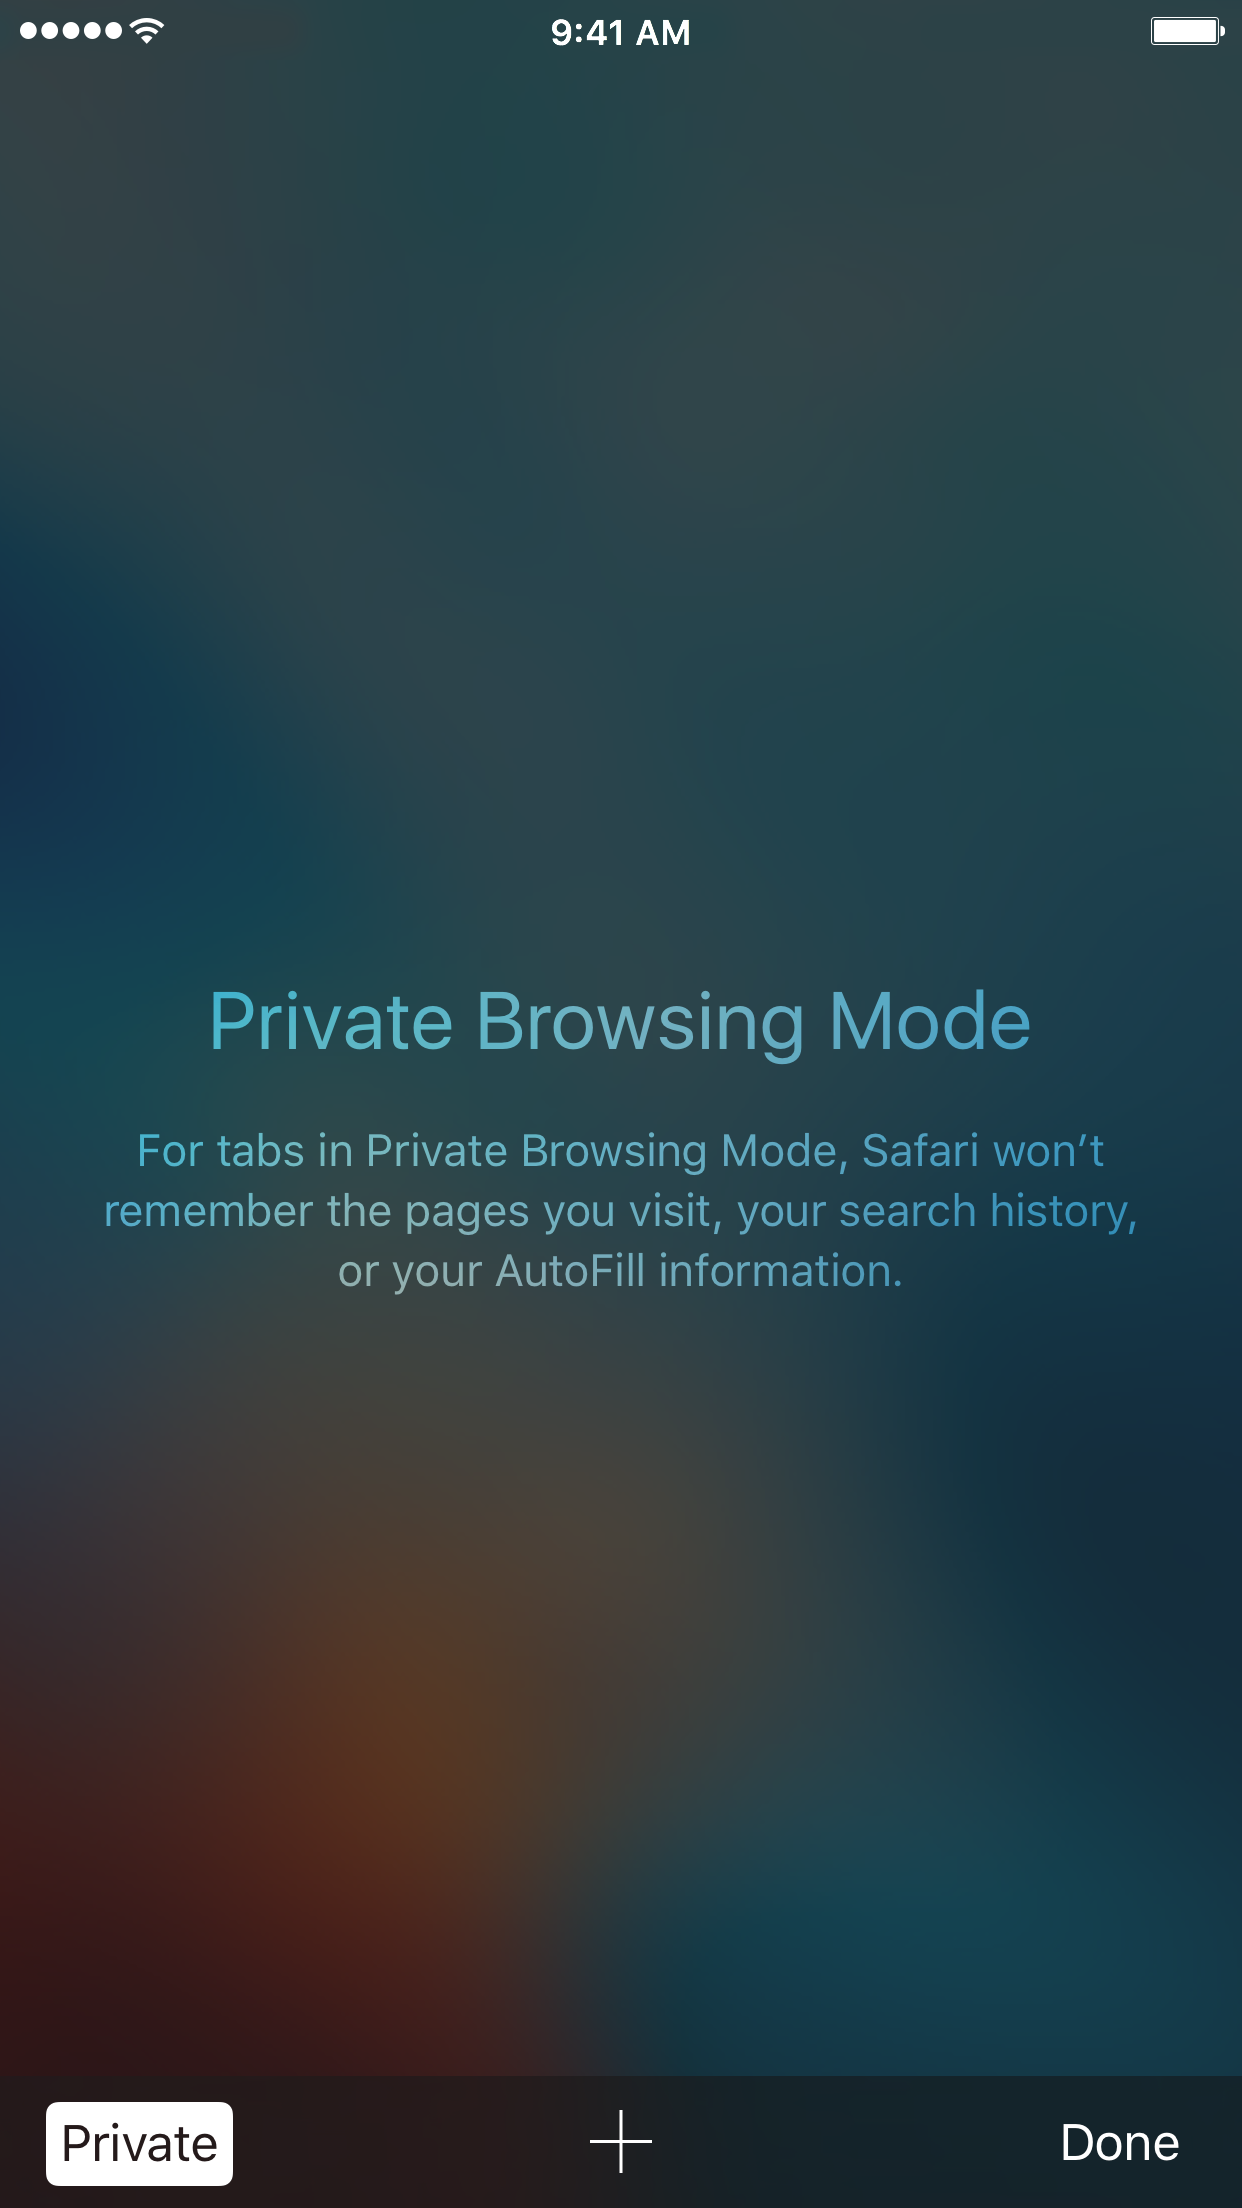 Safari Private Browsing Button Missing? Fix (iOS)